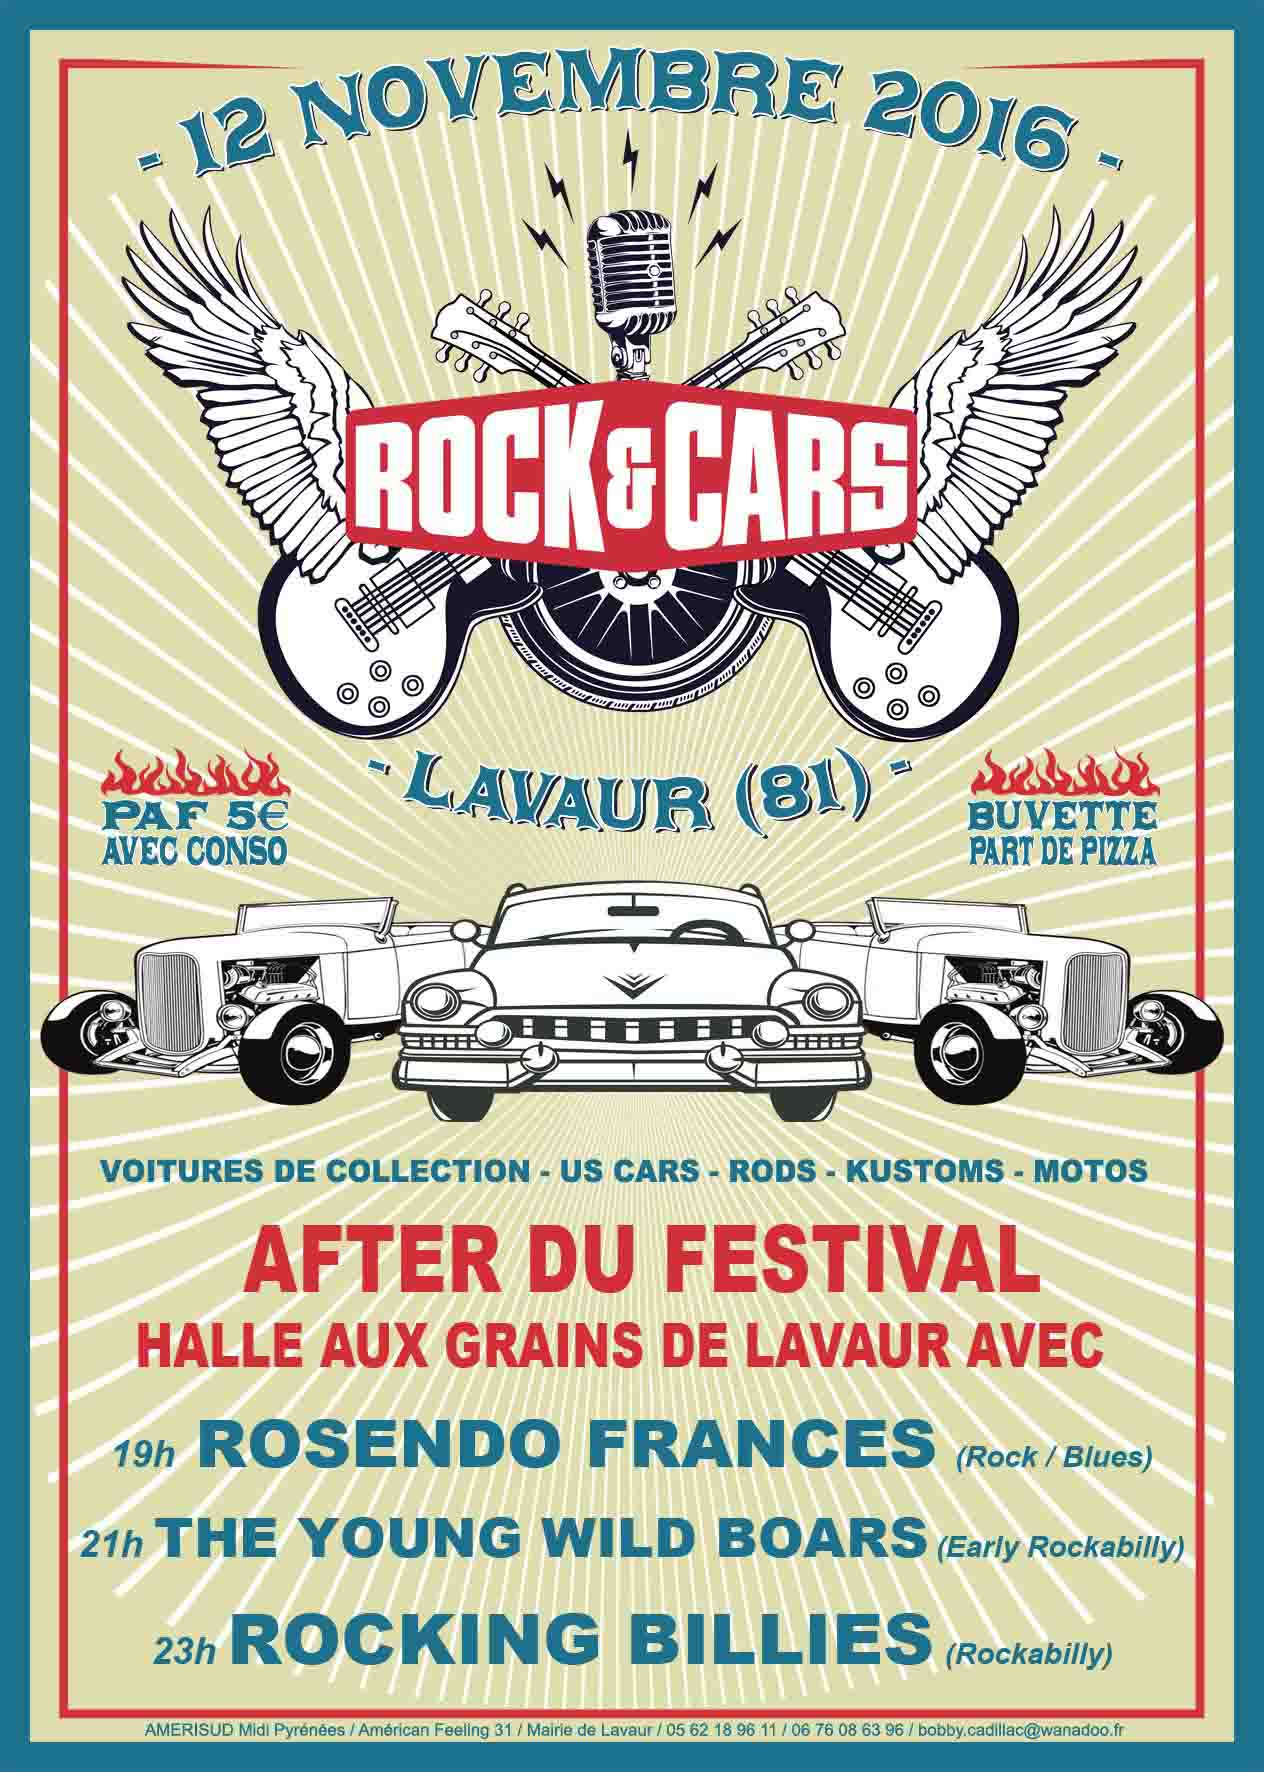 After Du Festival Rock'and'cars 2016 � La Halle Aux Grains De Lavaur (81)